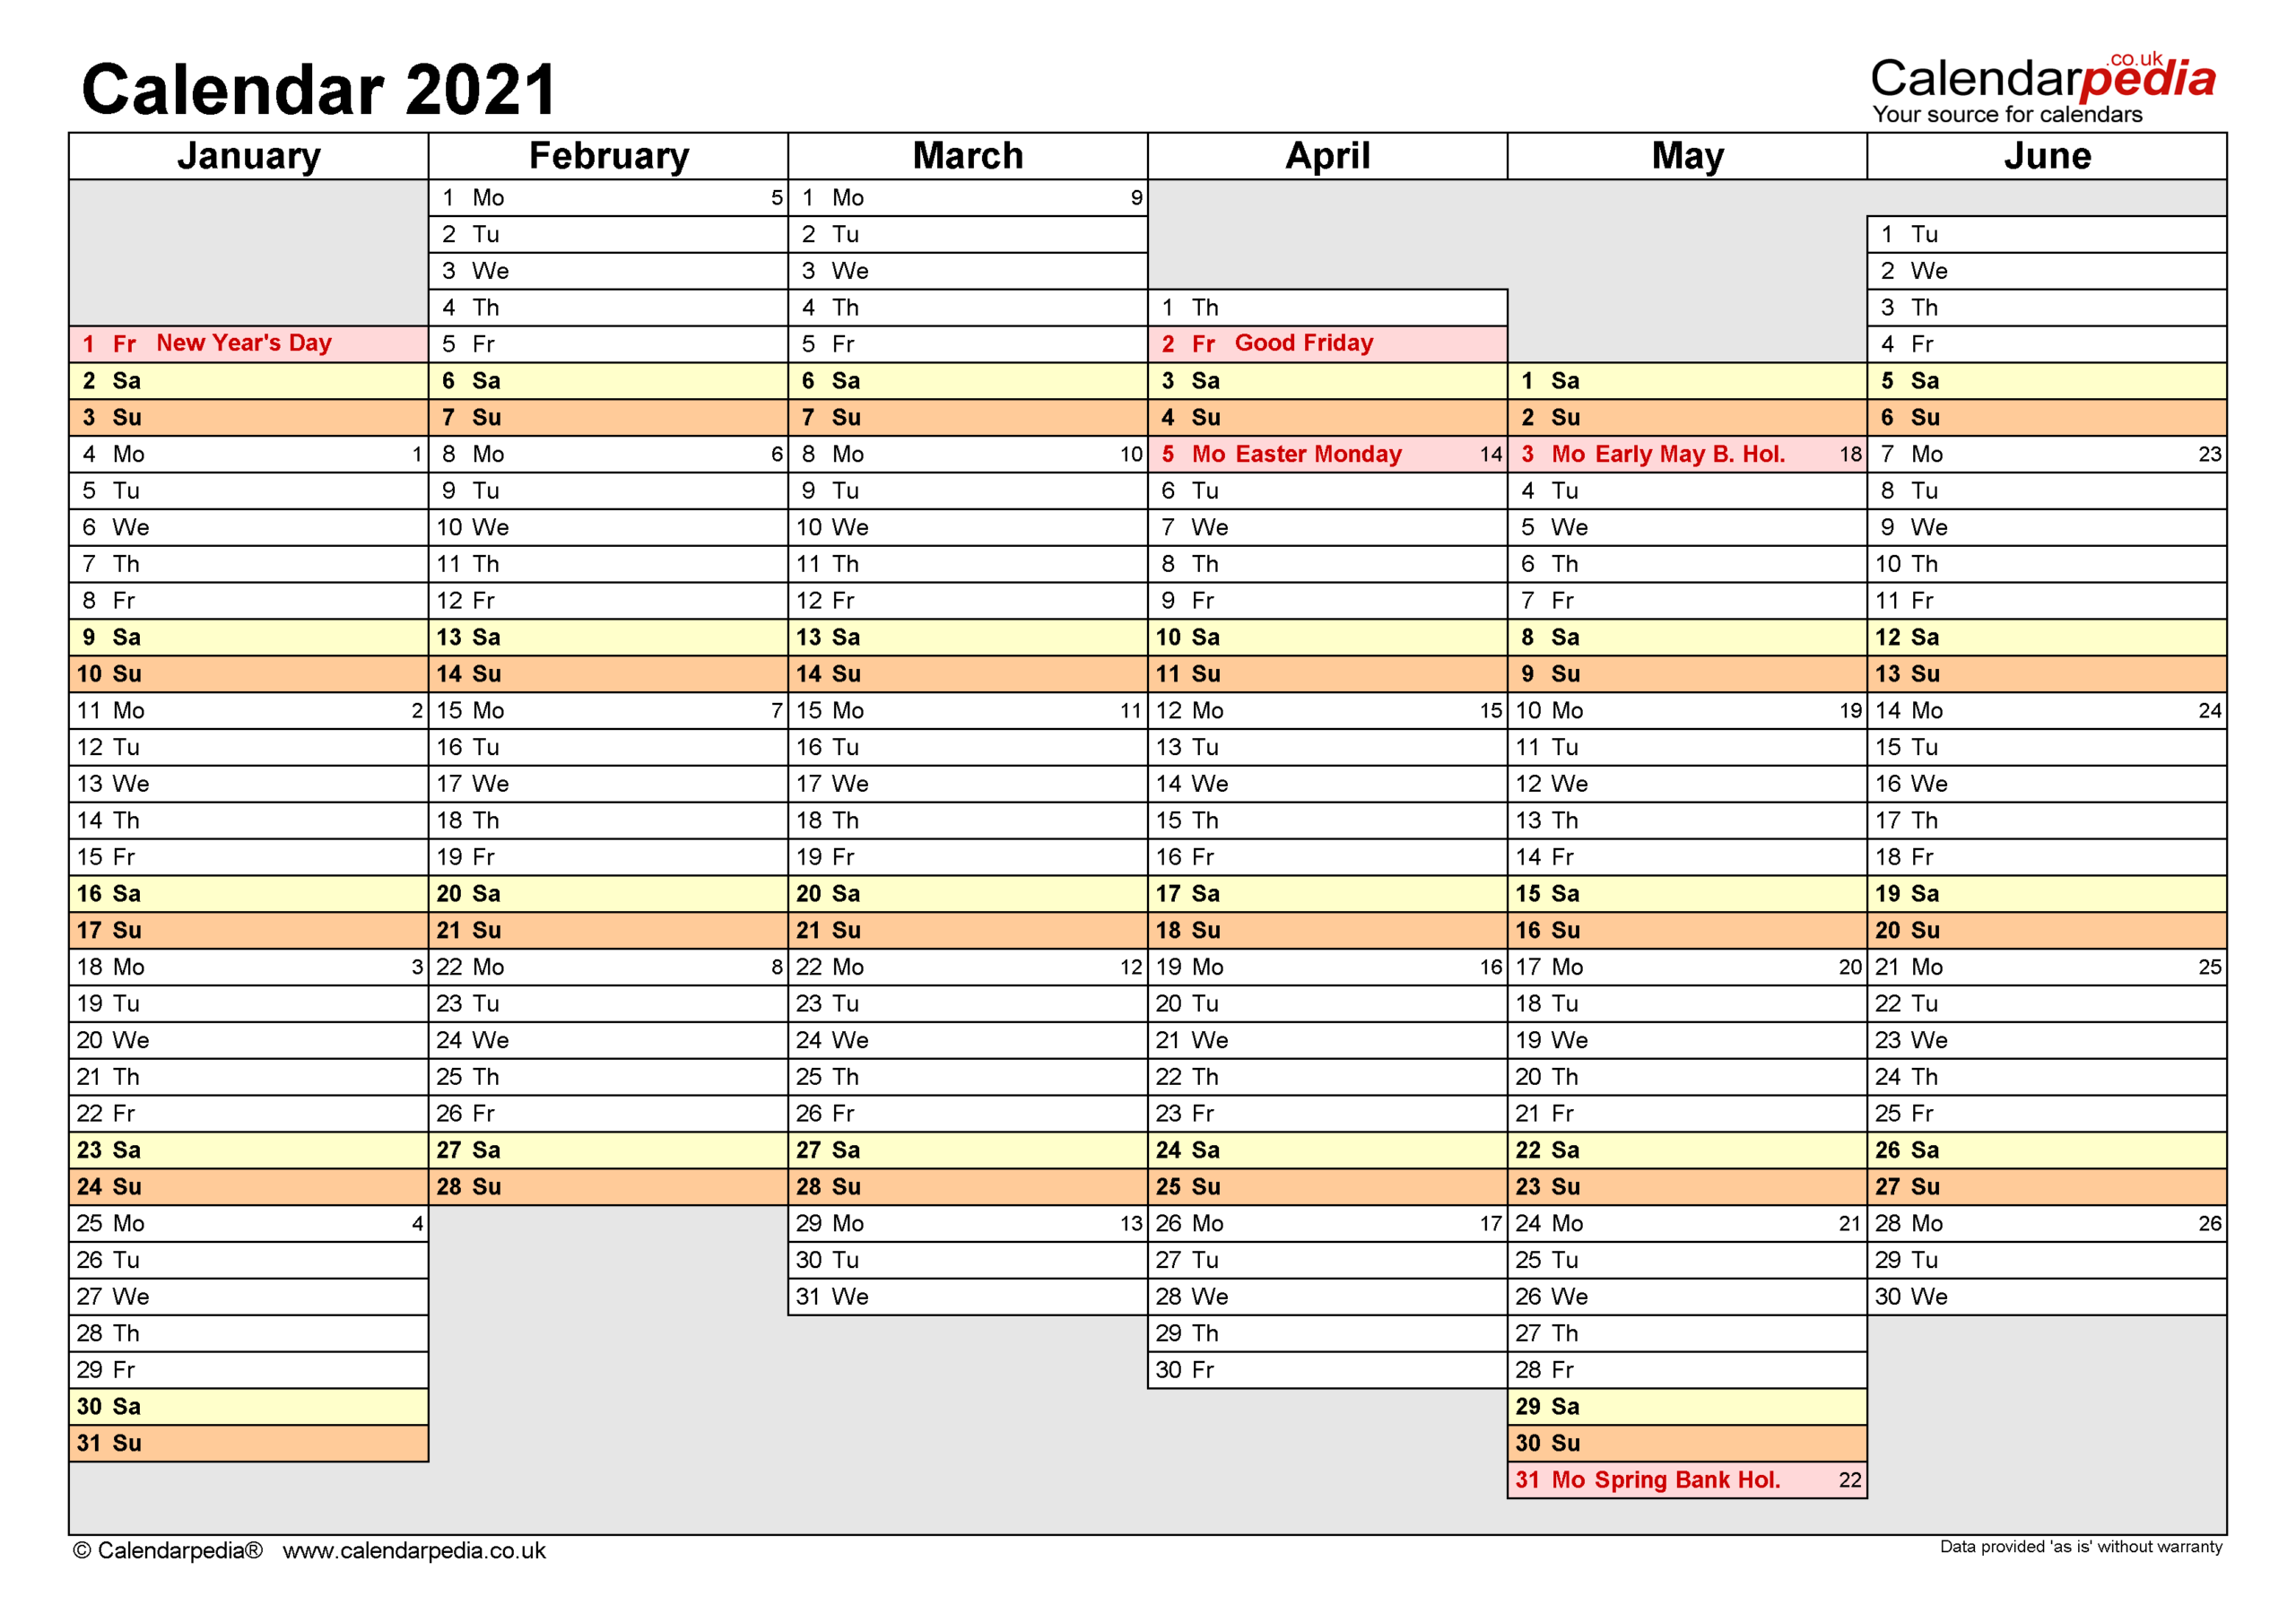 Calendar 2021 (Uk) - Free Printable Pdf Templates for 2021-2021 Monthly Two Year Planner: